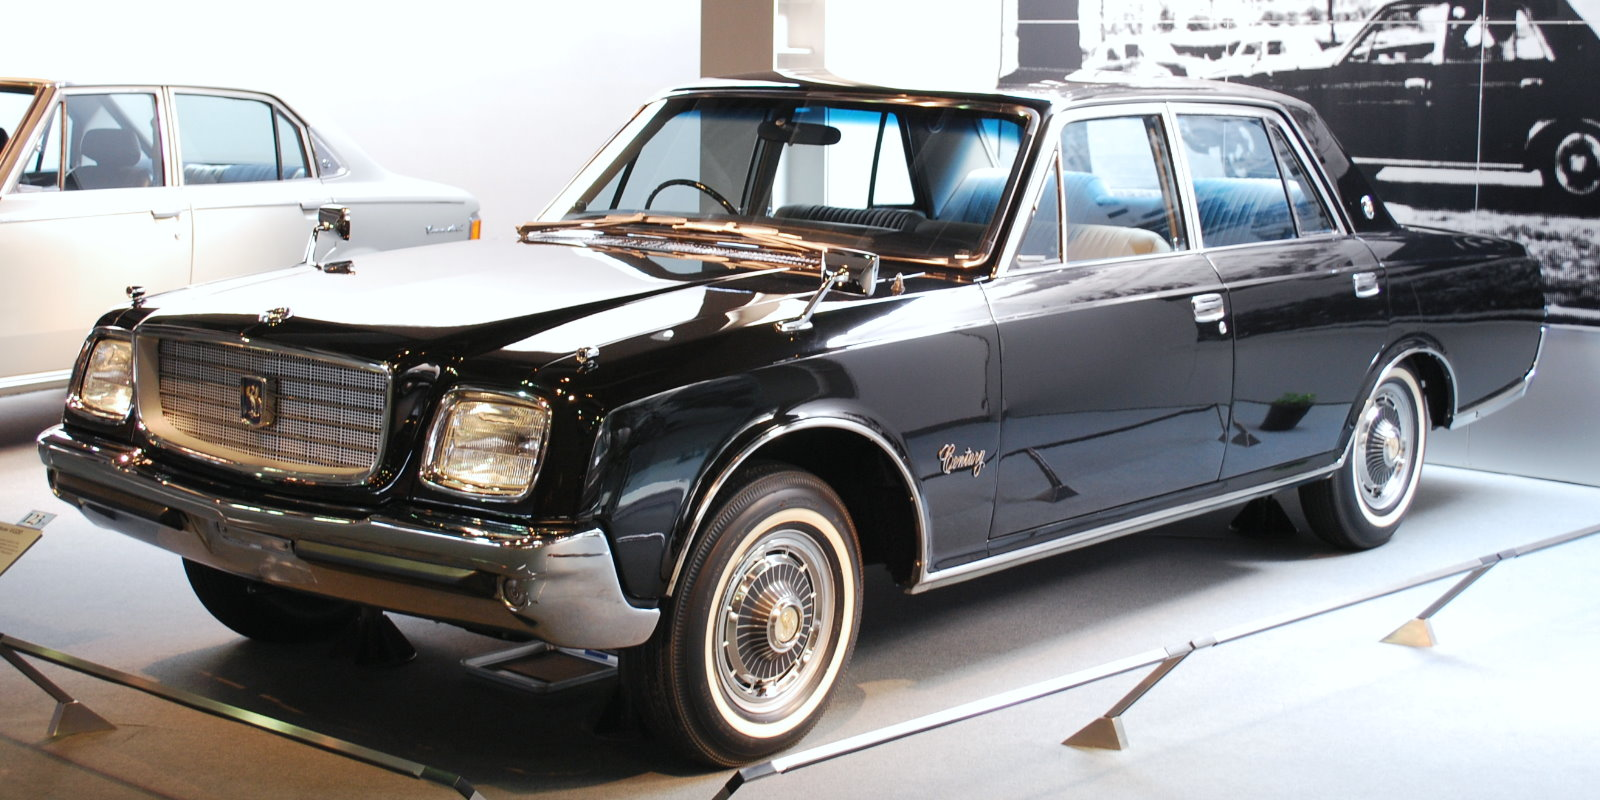 toyota century (vg20/vg45) 1991 images